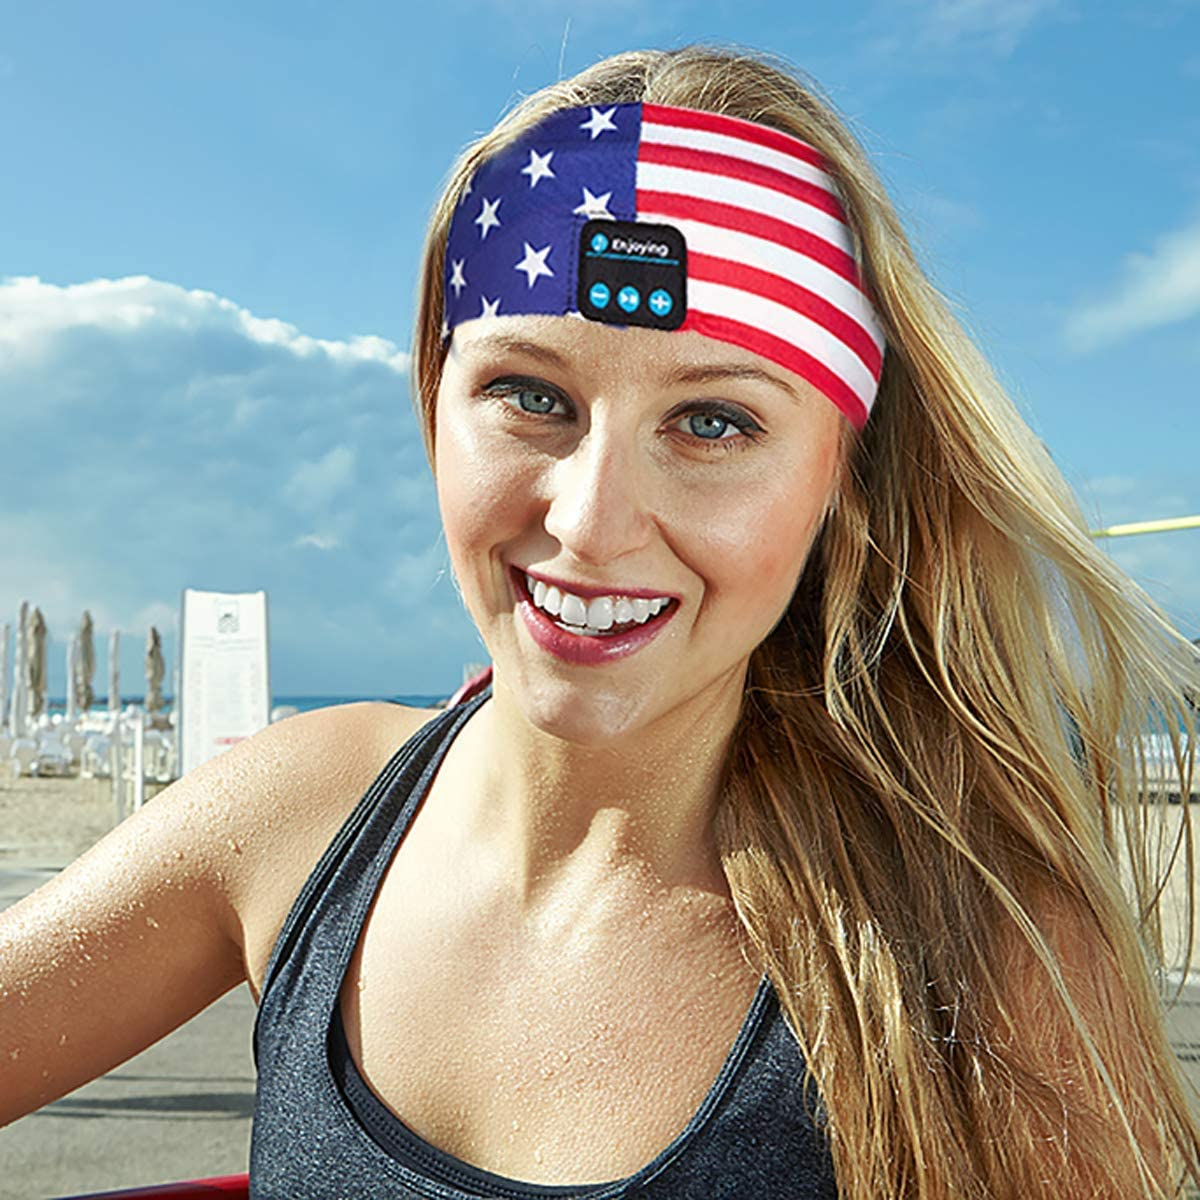 Bluetooth Headband Headphones, Wireless Bluetooth Sleeping Headband Running Music Earphones Headband Sports Sweatband Built-in Speakers Microphone American Flag Design for 4th of July